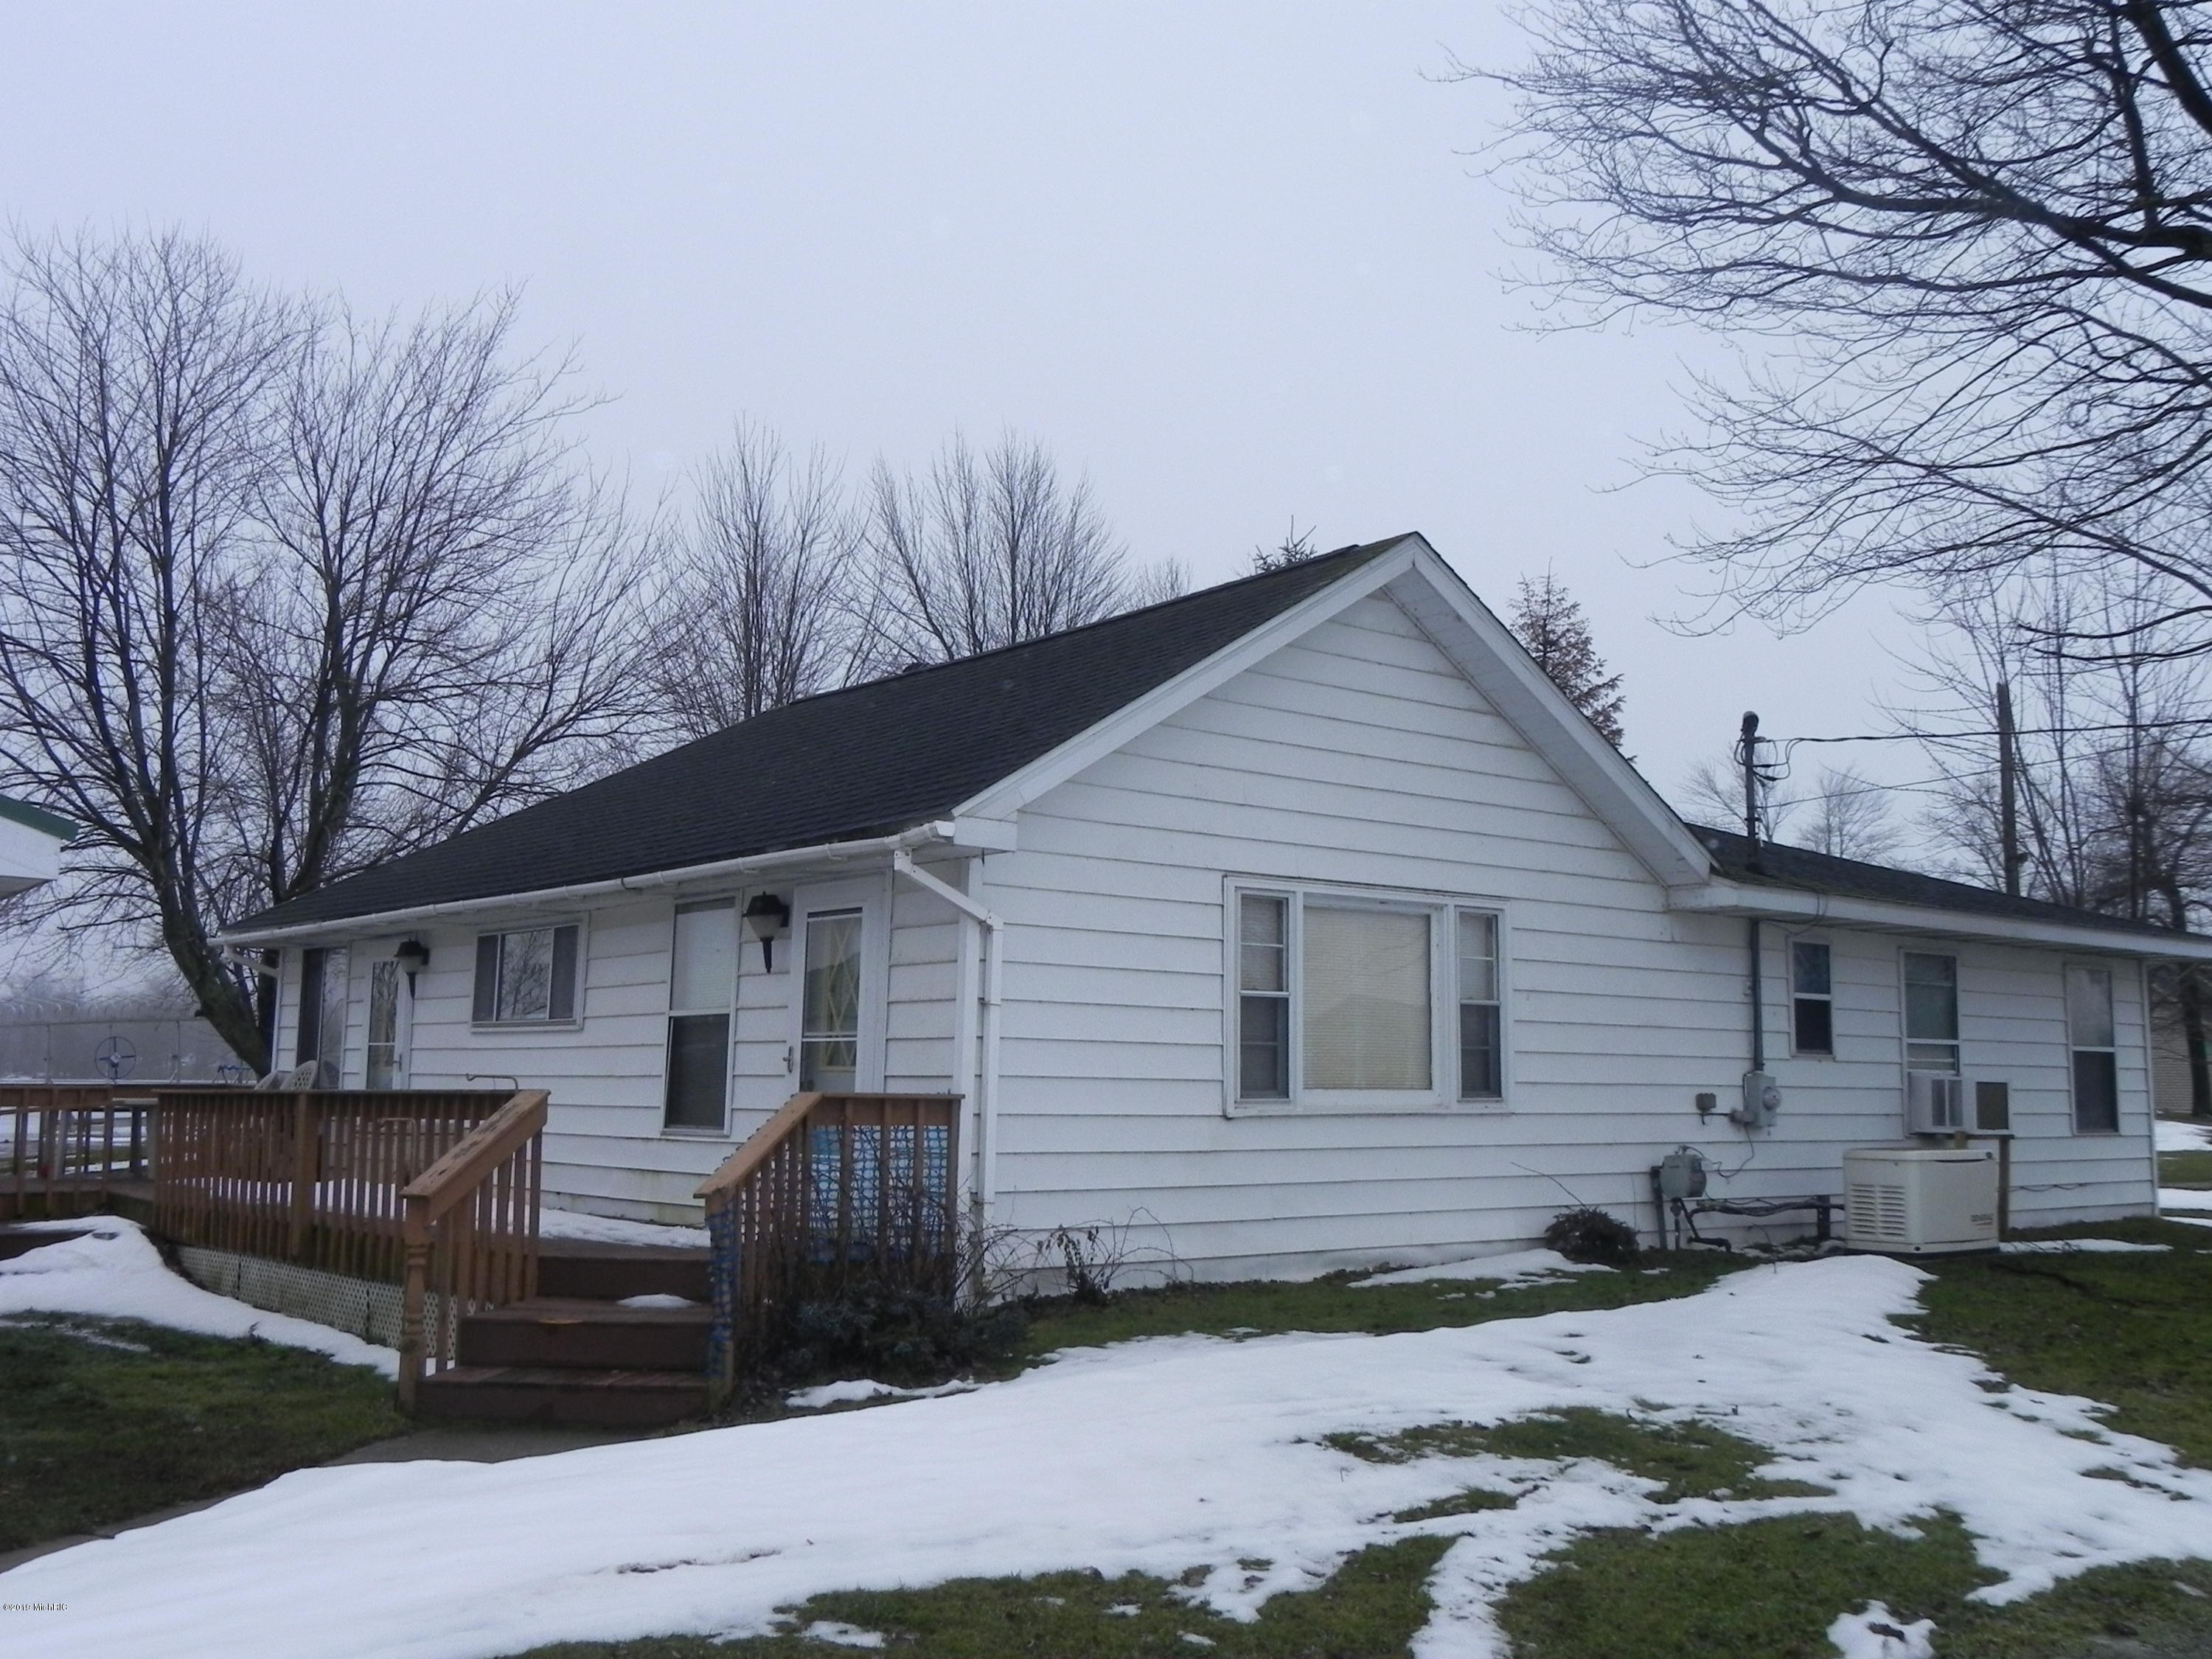 Photo for 41737 N Park Street, Paw Paw, MI 49079 (MLS # 19004416)